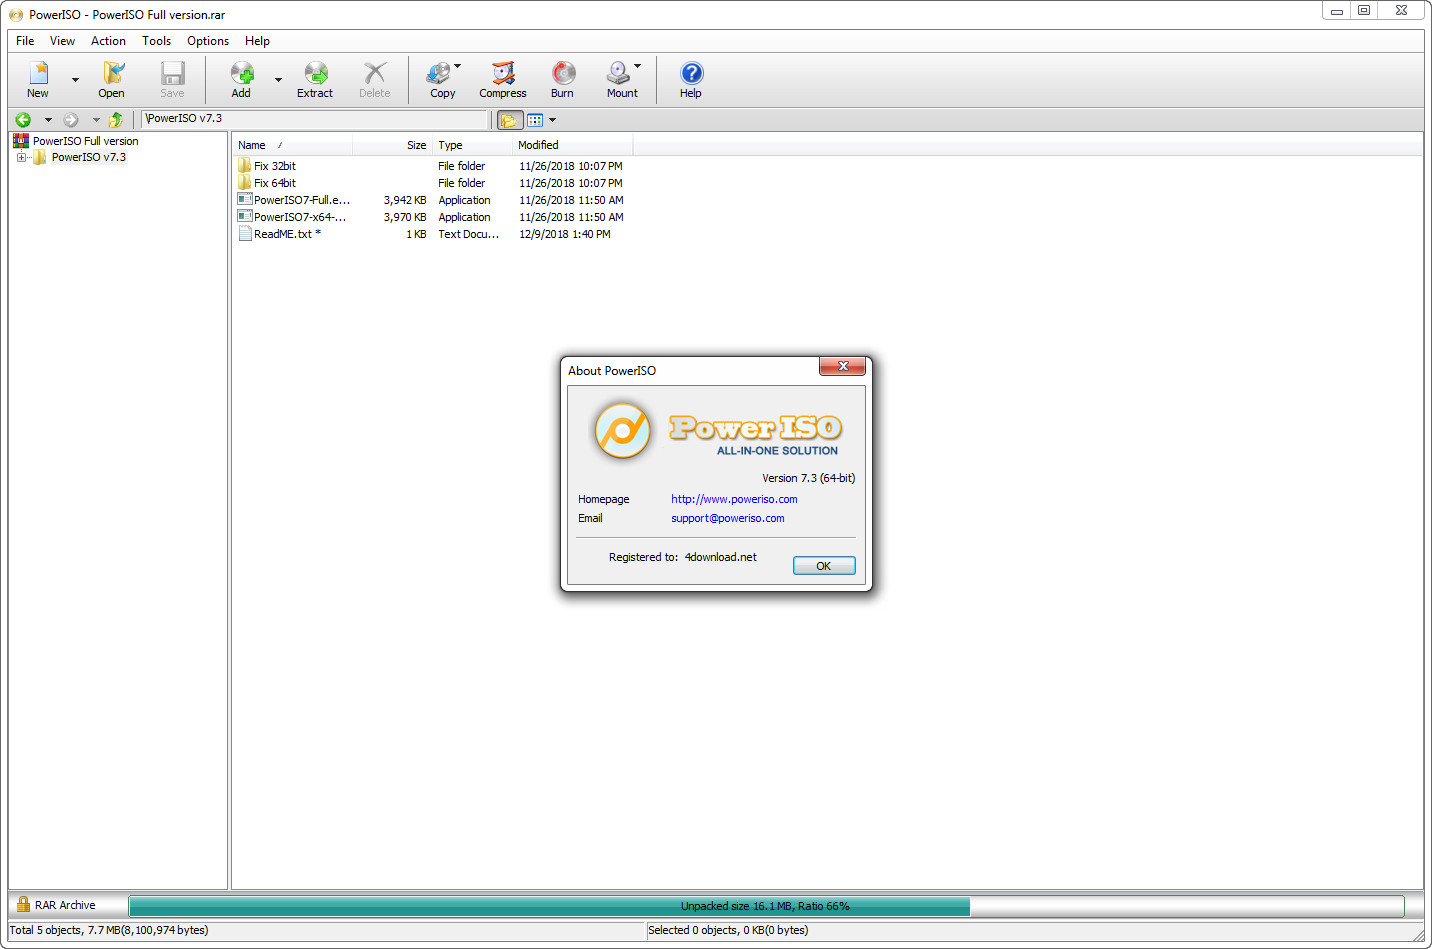 PowerISO v7.4 Full version